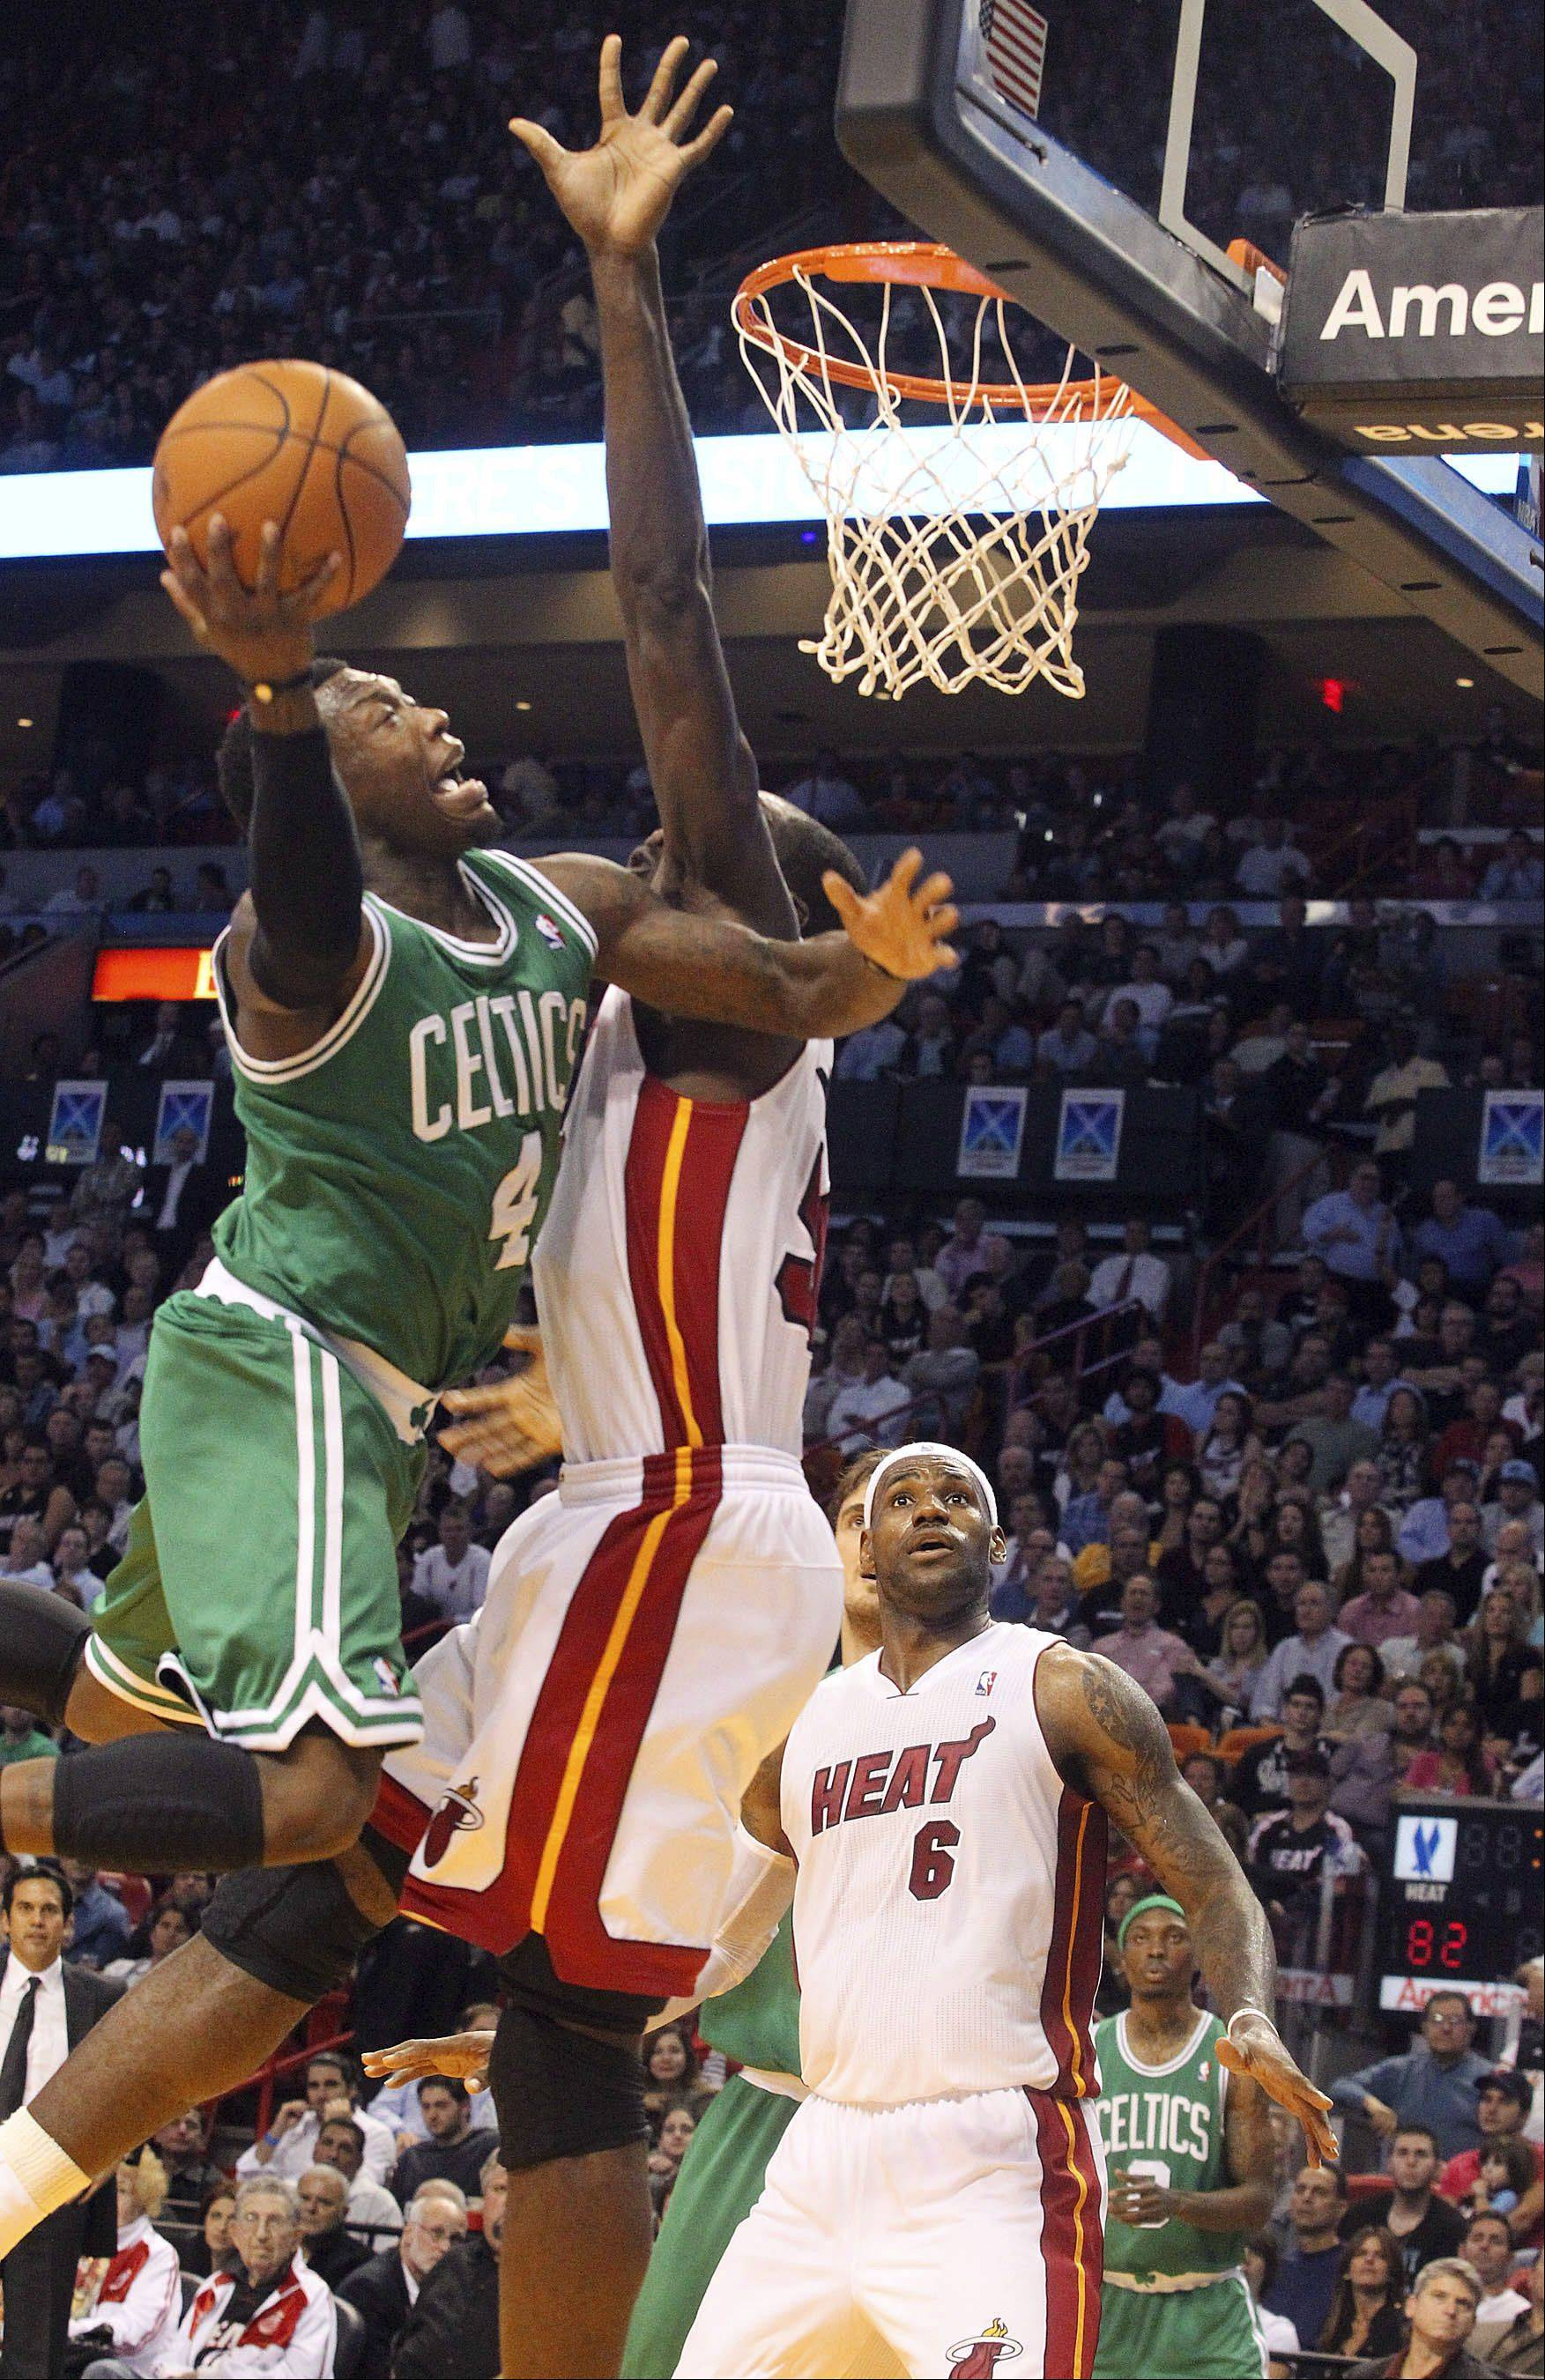 Boston Celtics� Nate Robinson goes to the basket against Miami Heat�s Dwyane Wade during the third quarter of an NBA basketball game Thursday, Nov. 11, 2010, in Miami.